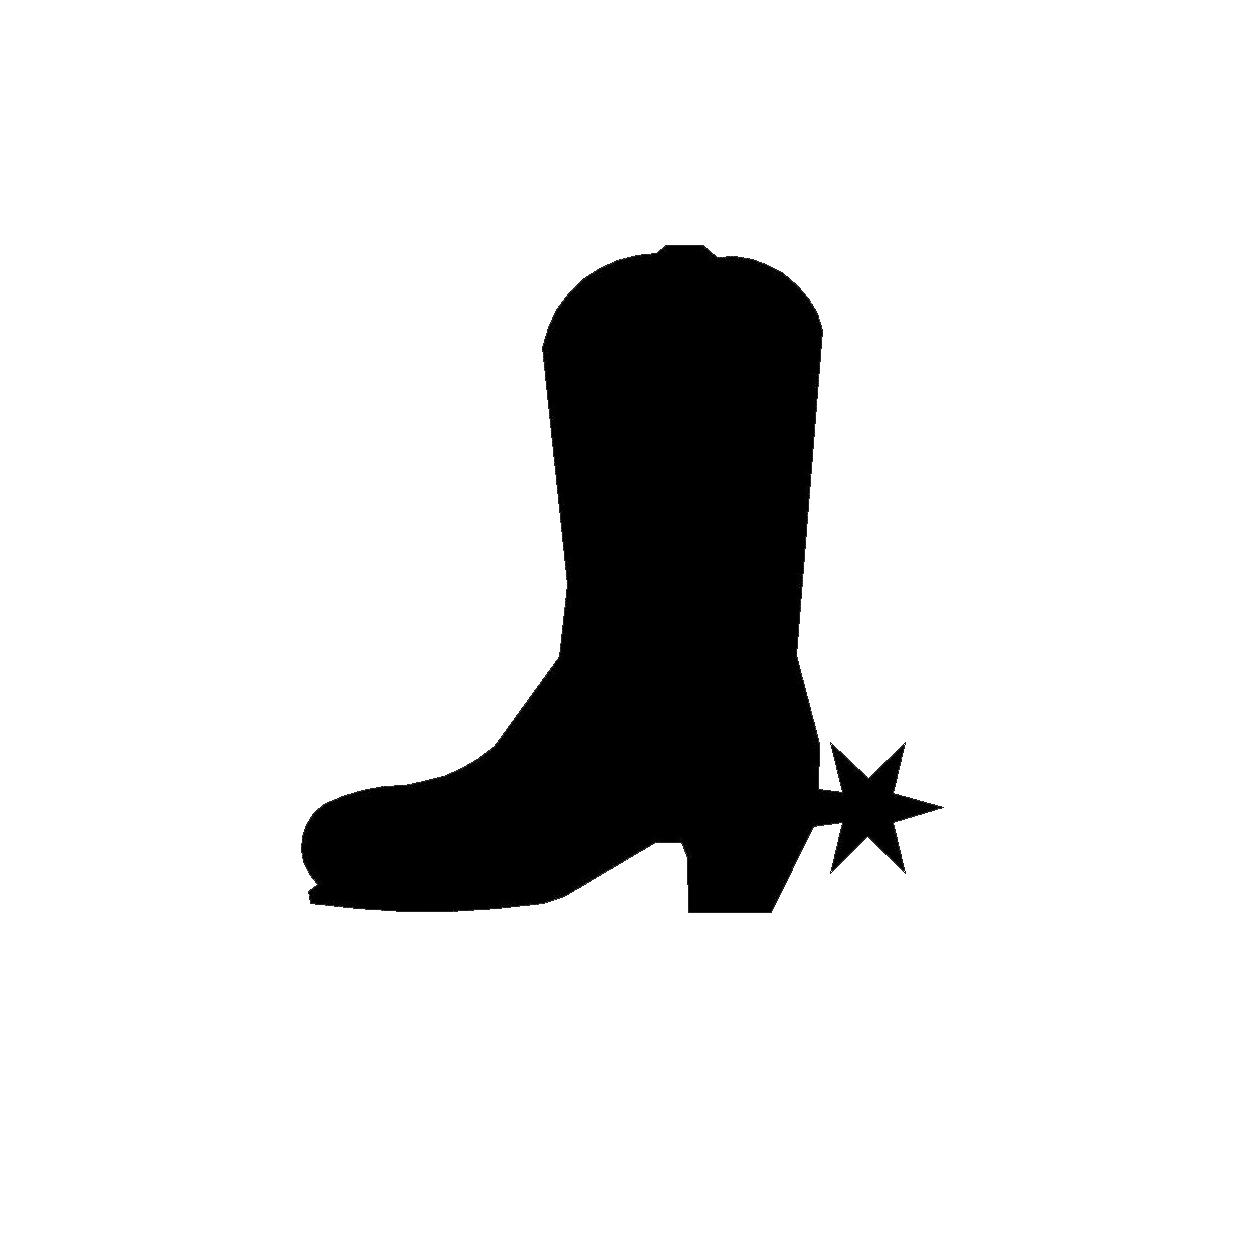 1260x1260 Hd Cute Cowboy Boots Clipart Boot Silhouette Clip Art Image